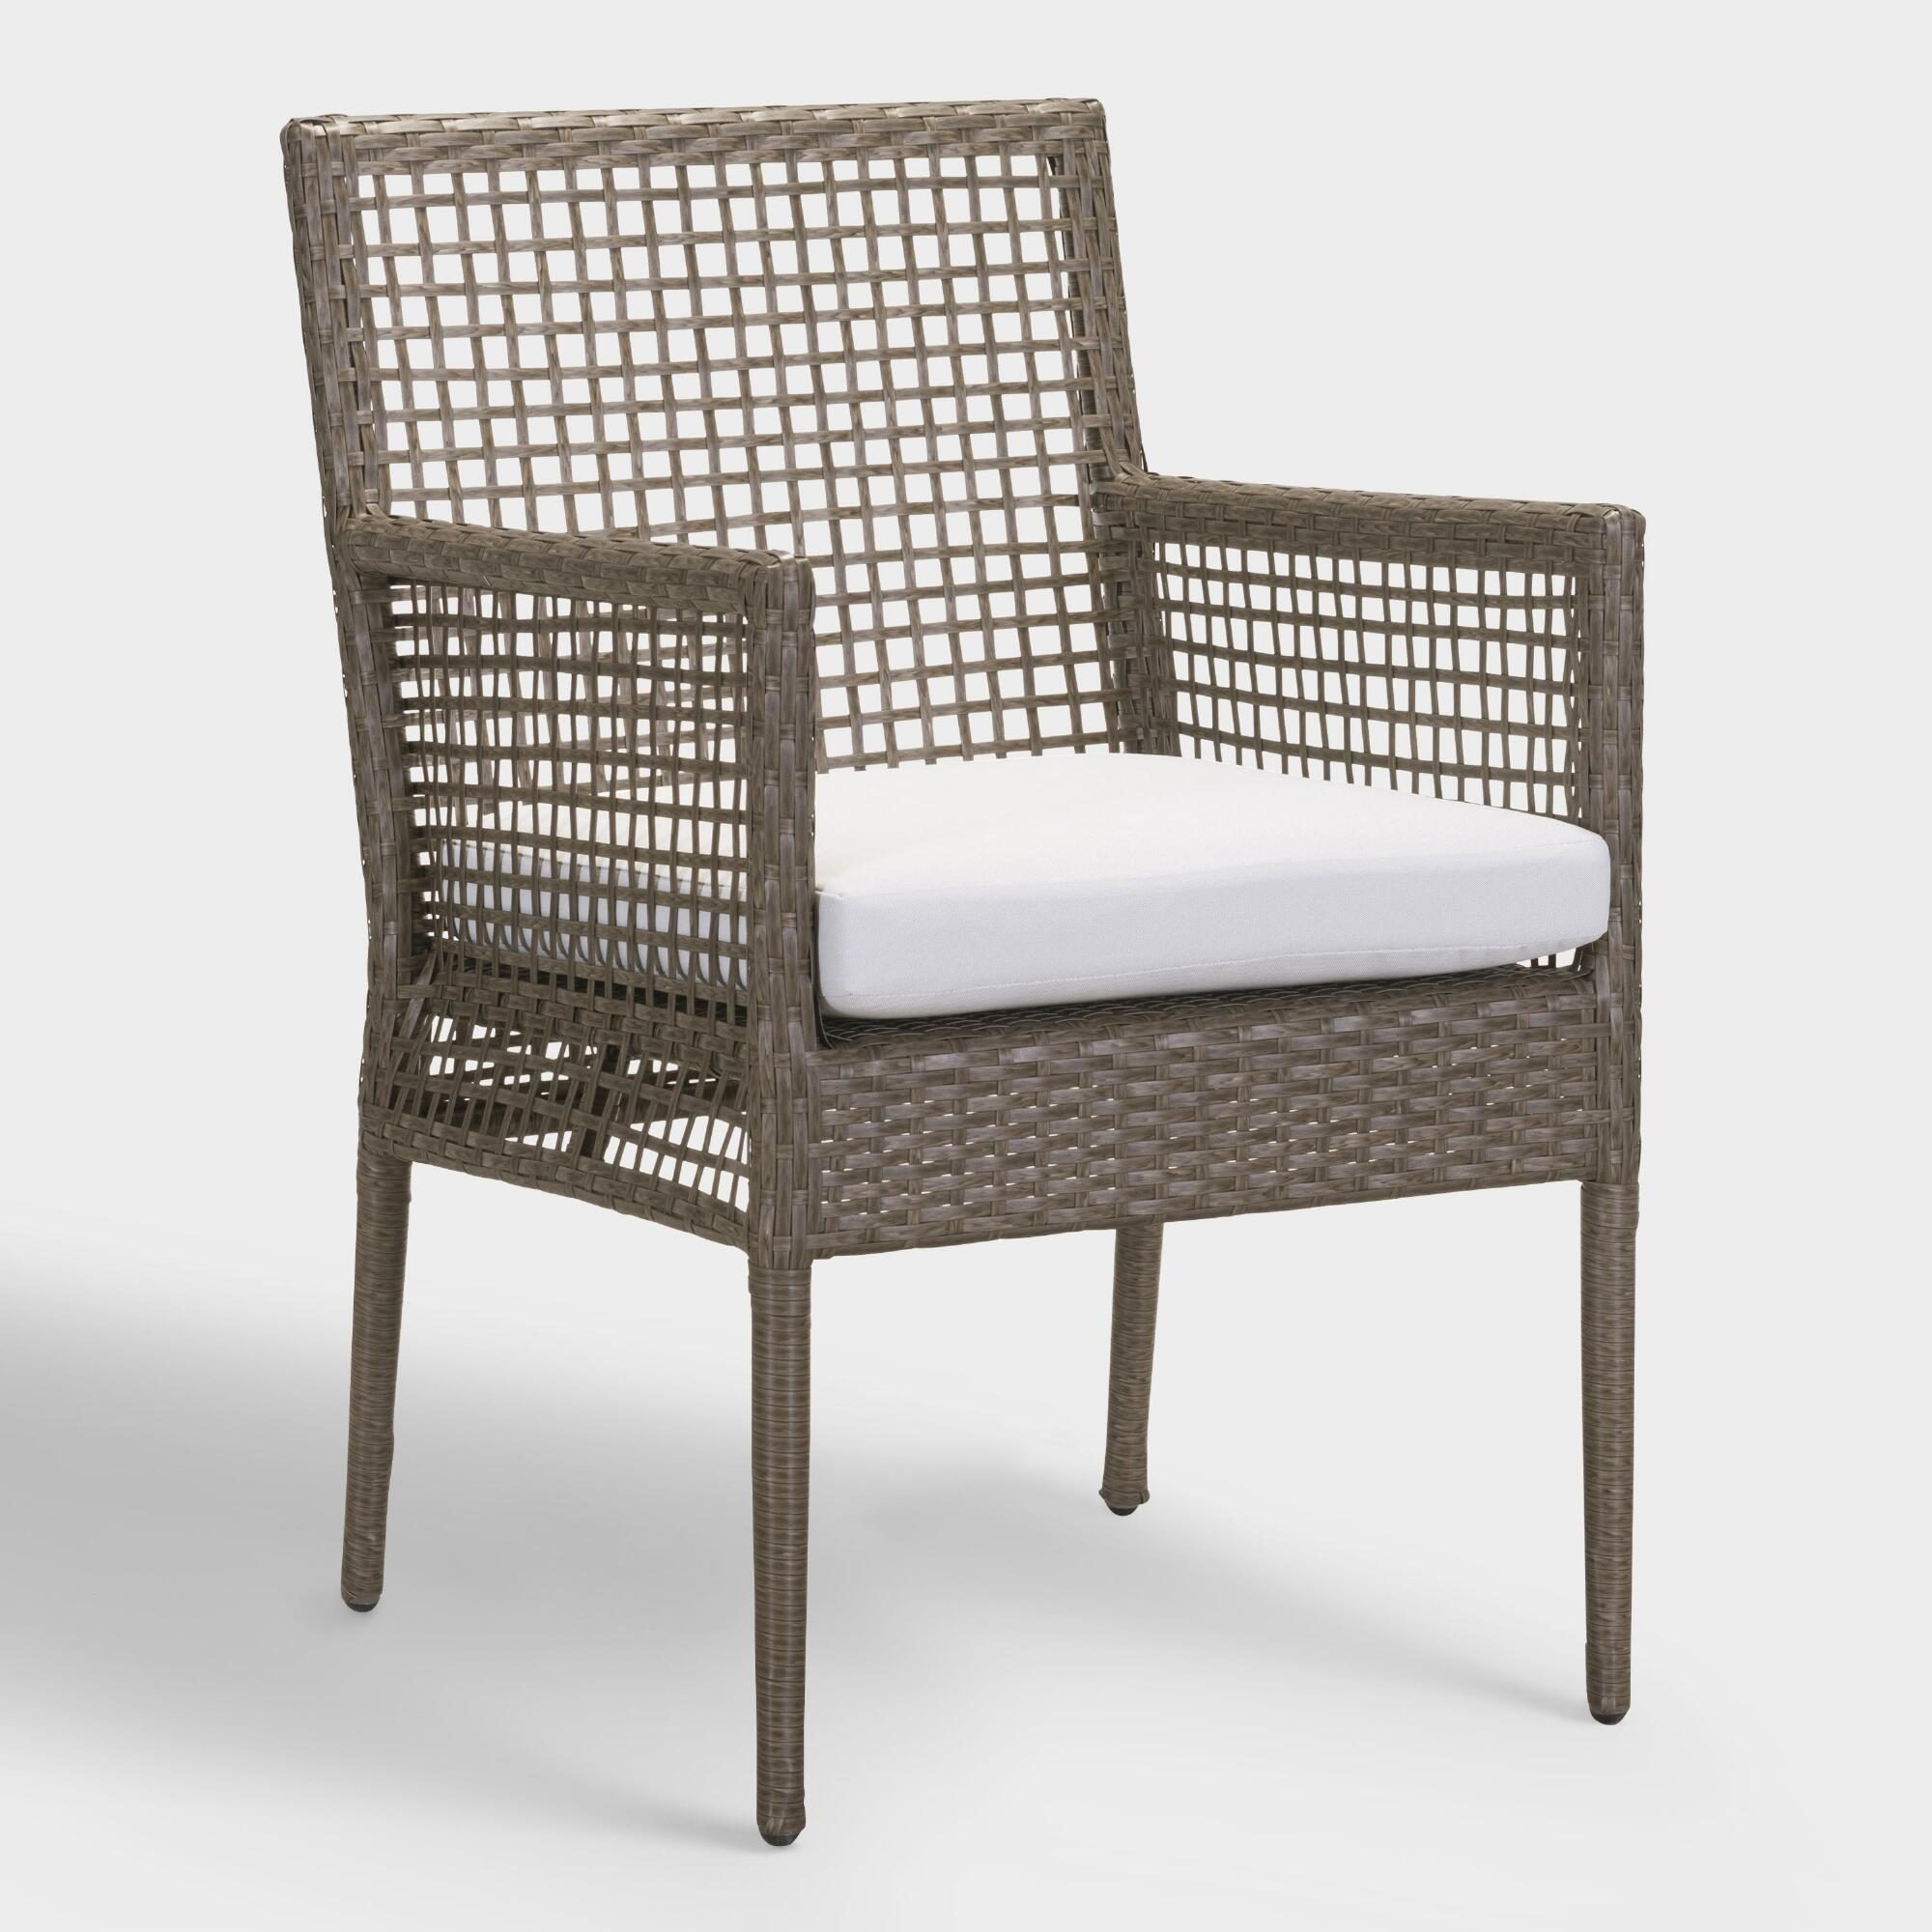 All Weather Wicker Erich Outdoor Patio Dining Chairs Set of 2: Gray by World Market